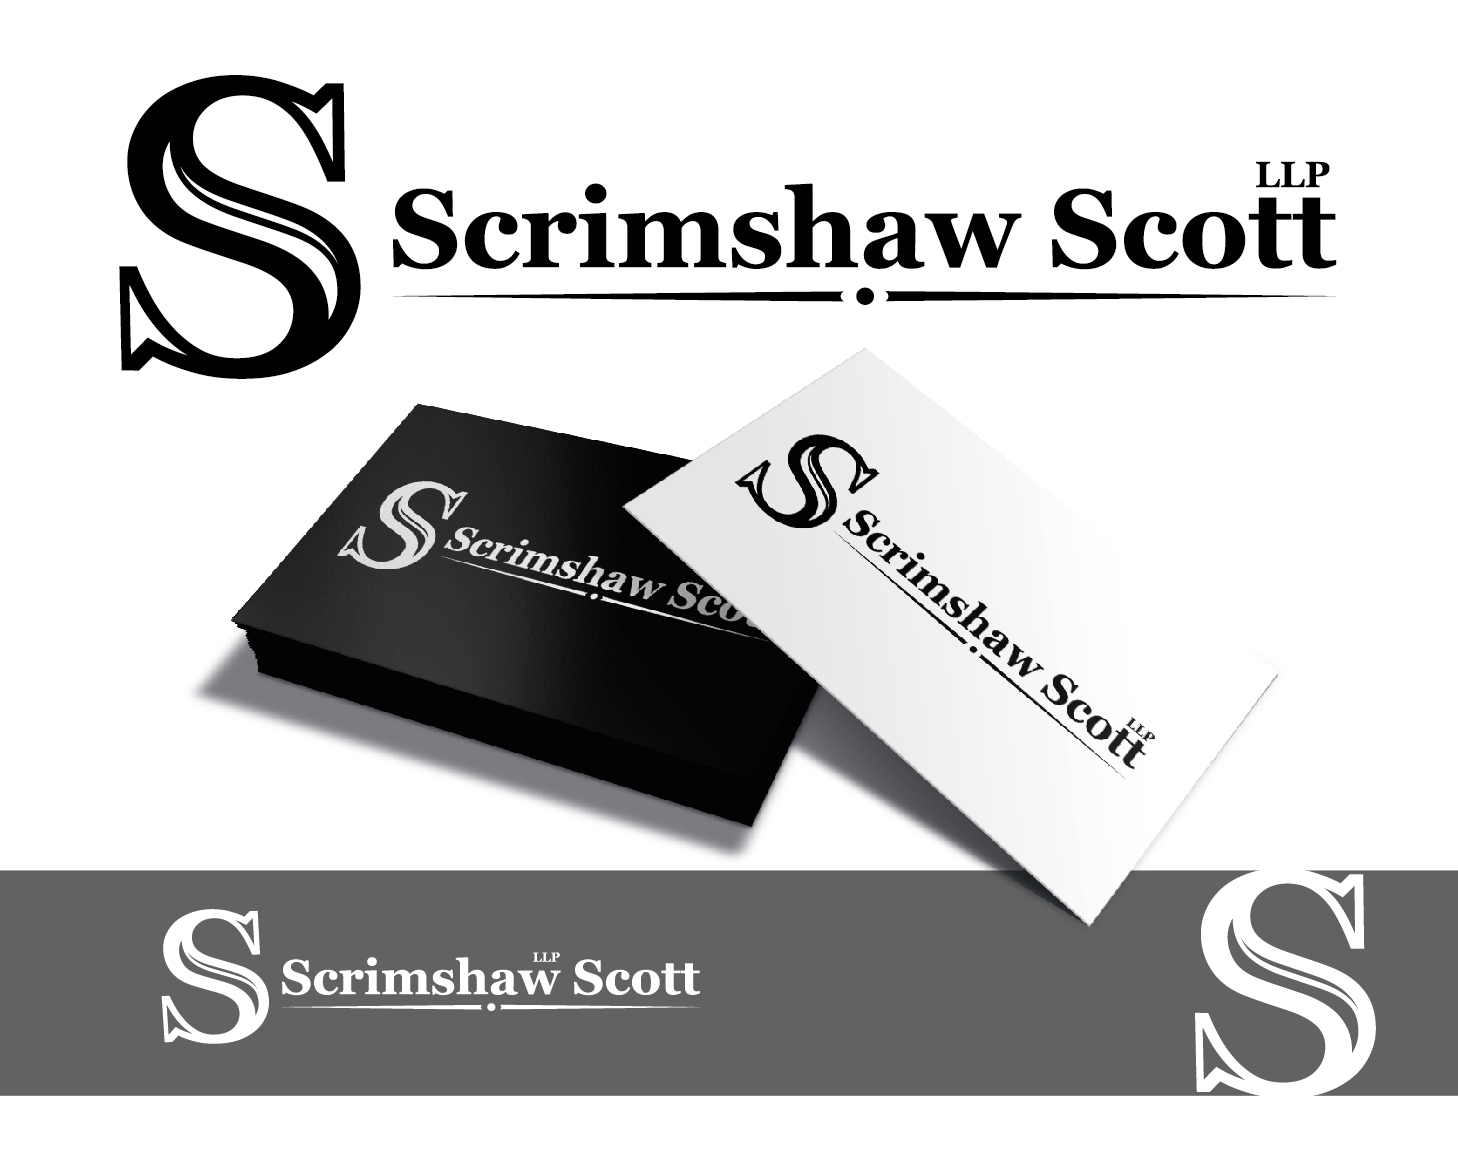 Logo Design by VENTSISLAV KOVACHEV - Entry No. 62 in the Logo Design Contest Creative Logo Design for Scrimshaw Scott LLP.